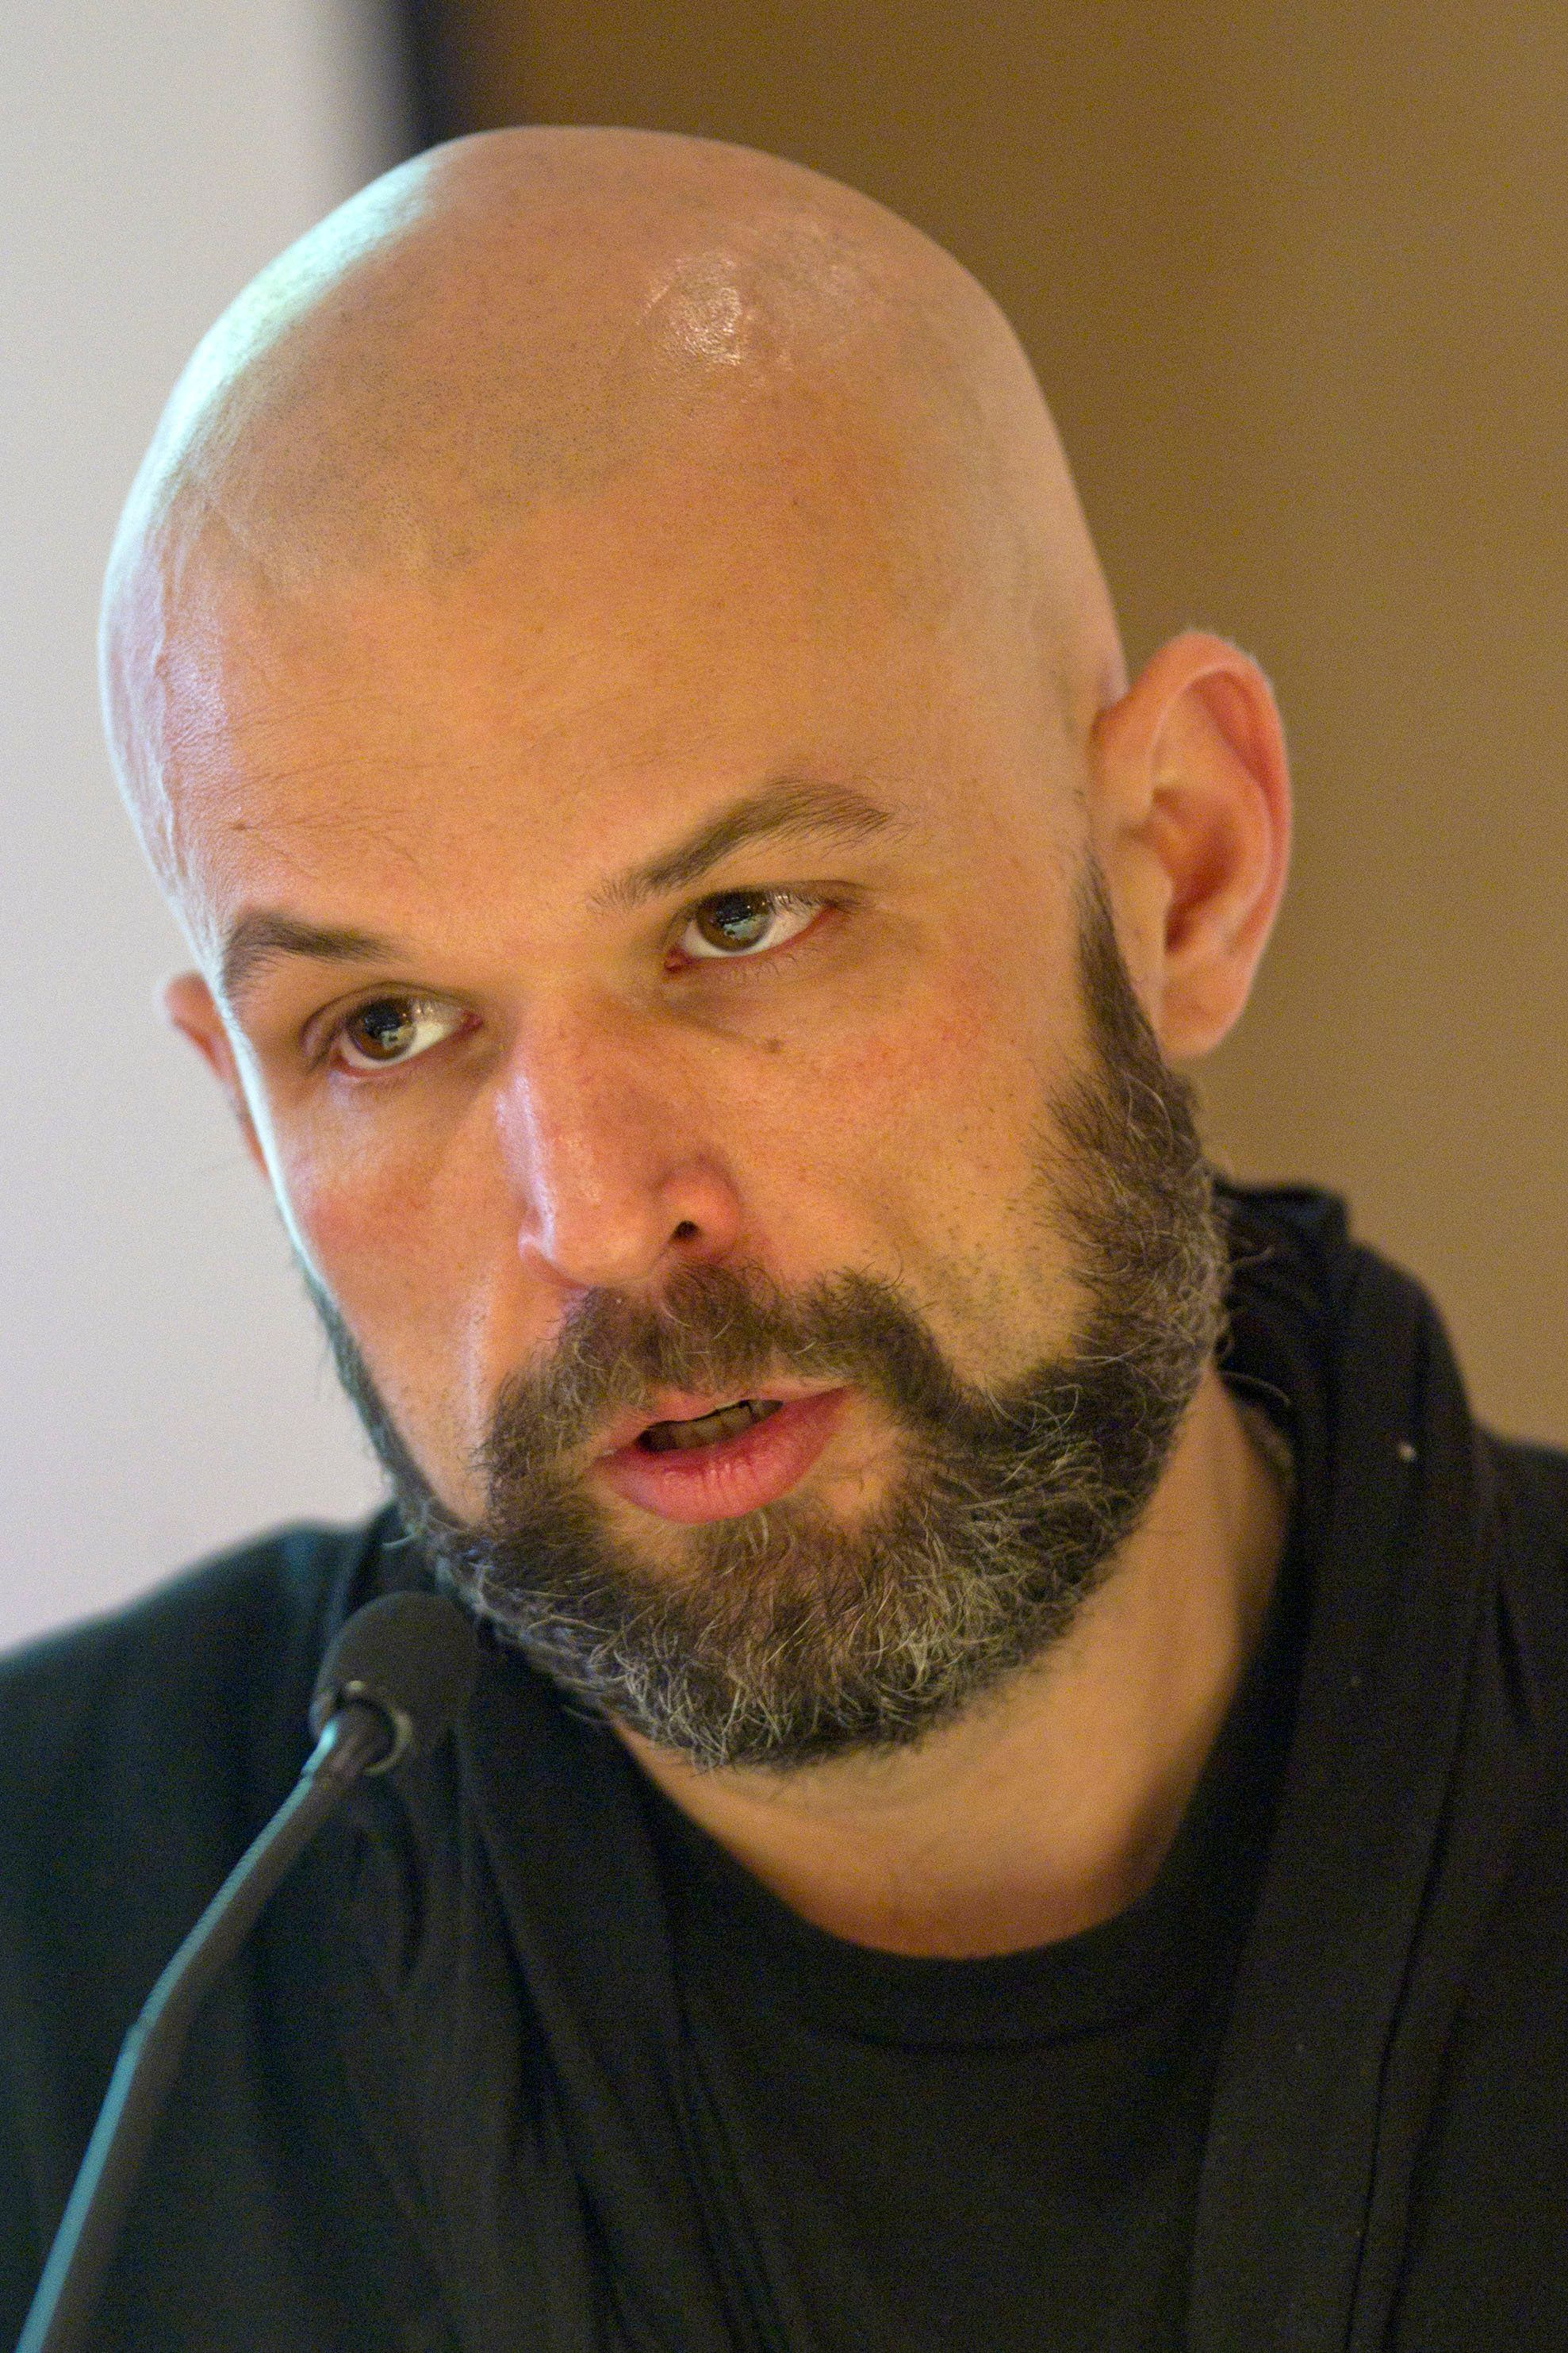 Kevin Williamson wrotea recentop-ed for The Washington Post about imposing criminal penalties for abortion provid